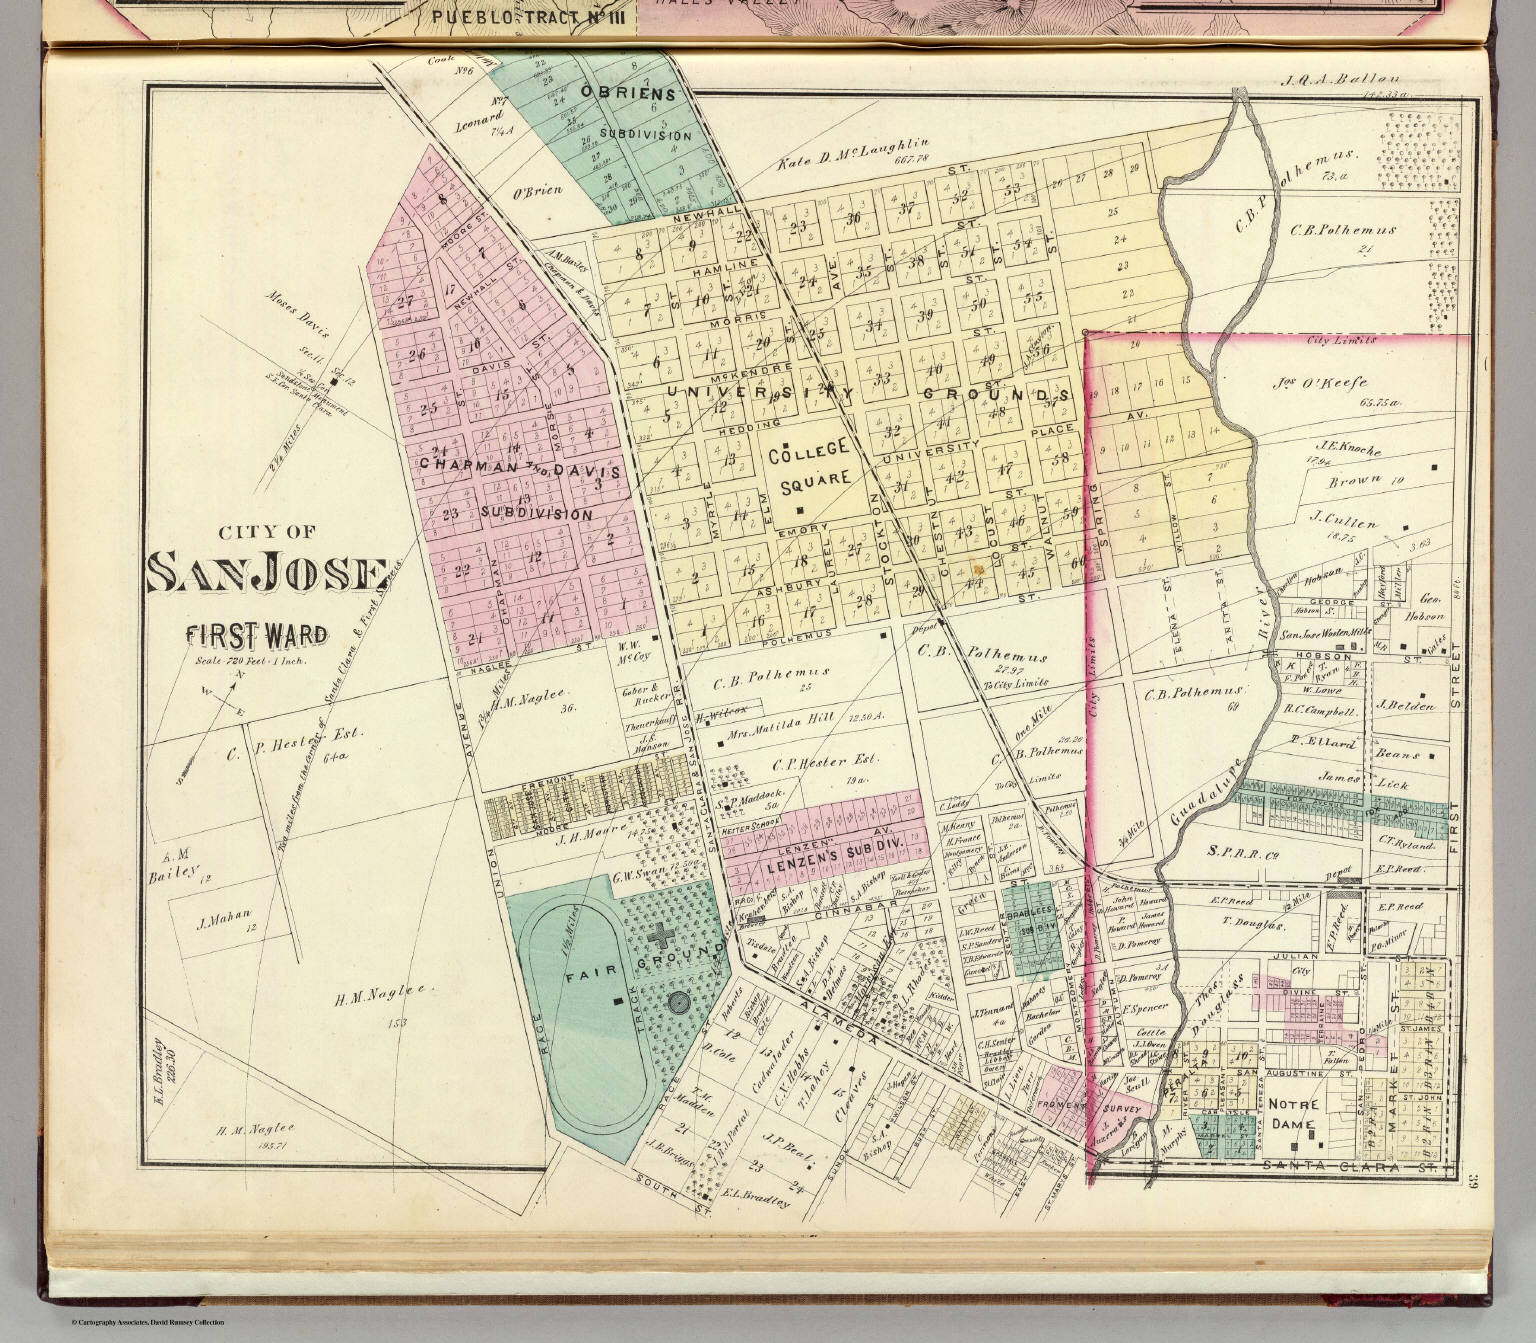 San Jose 1st ward. - David Rumsey Historical Map Collection